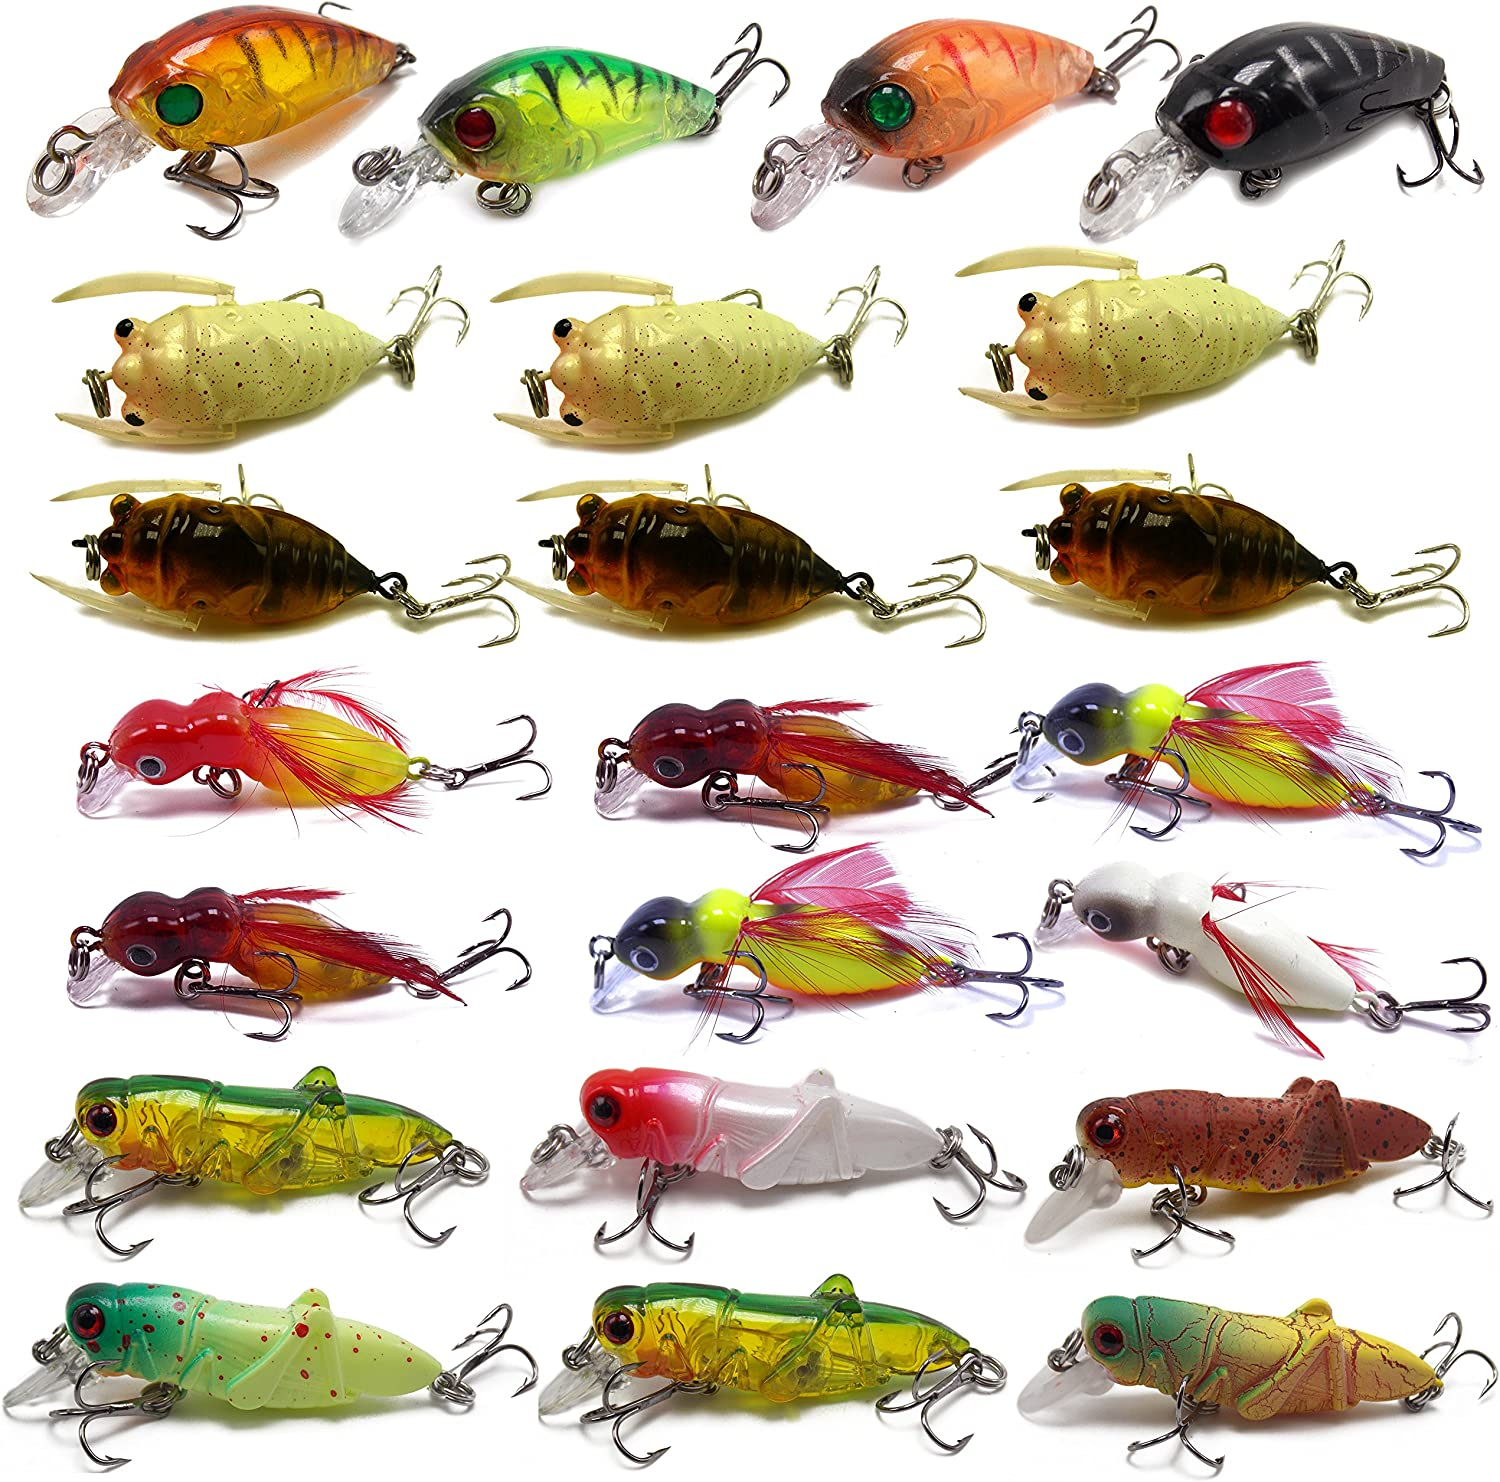 5cm 4pcs Cicada Bass Insect Fishing Lures Crank Bait Floating Tackle WIth Box